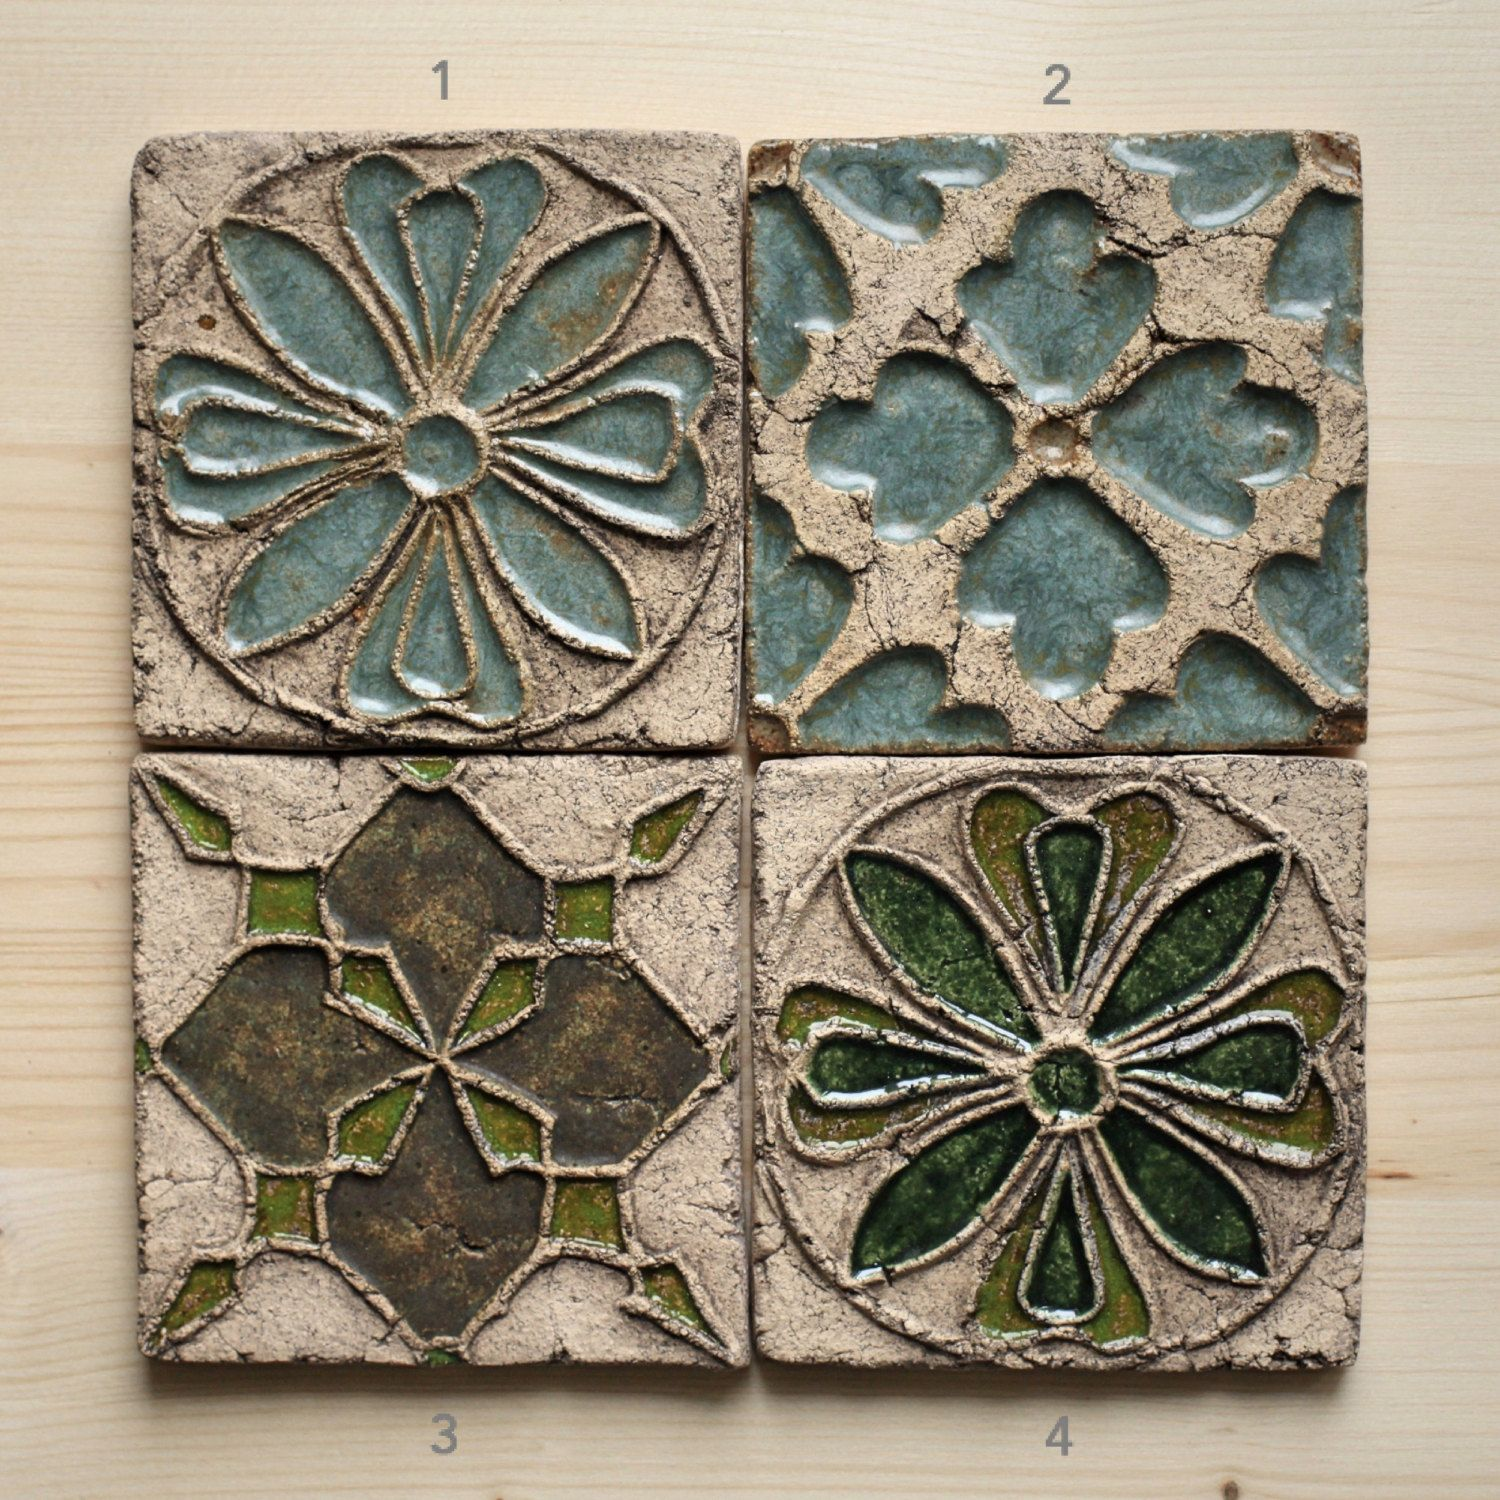 Handmade ceramic rustic tiles for kitchenbathroom backsplash by handmade ceramic rustic tiles for kitchenbathroom backsplash by herbariumceramics on etsy dailygadgetfo Gallery